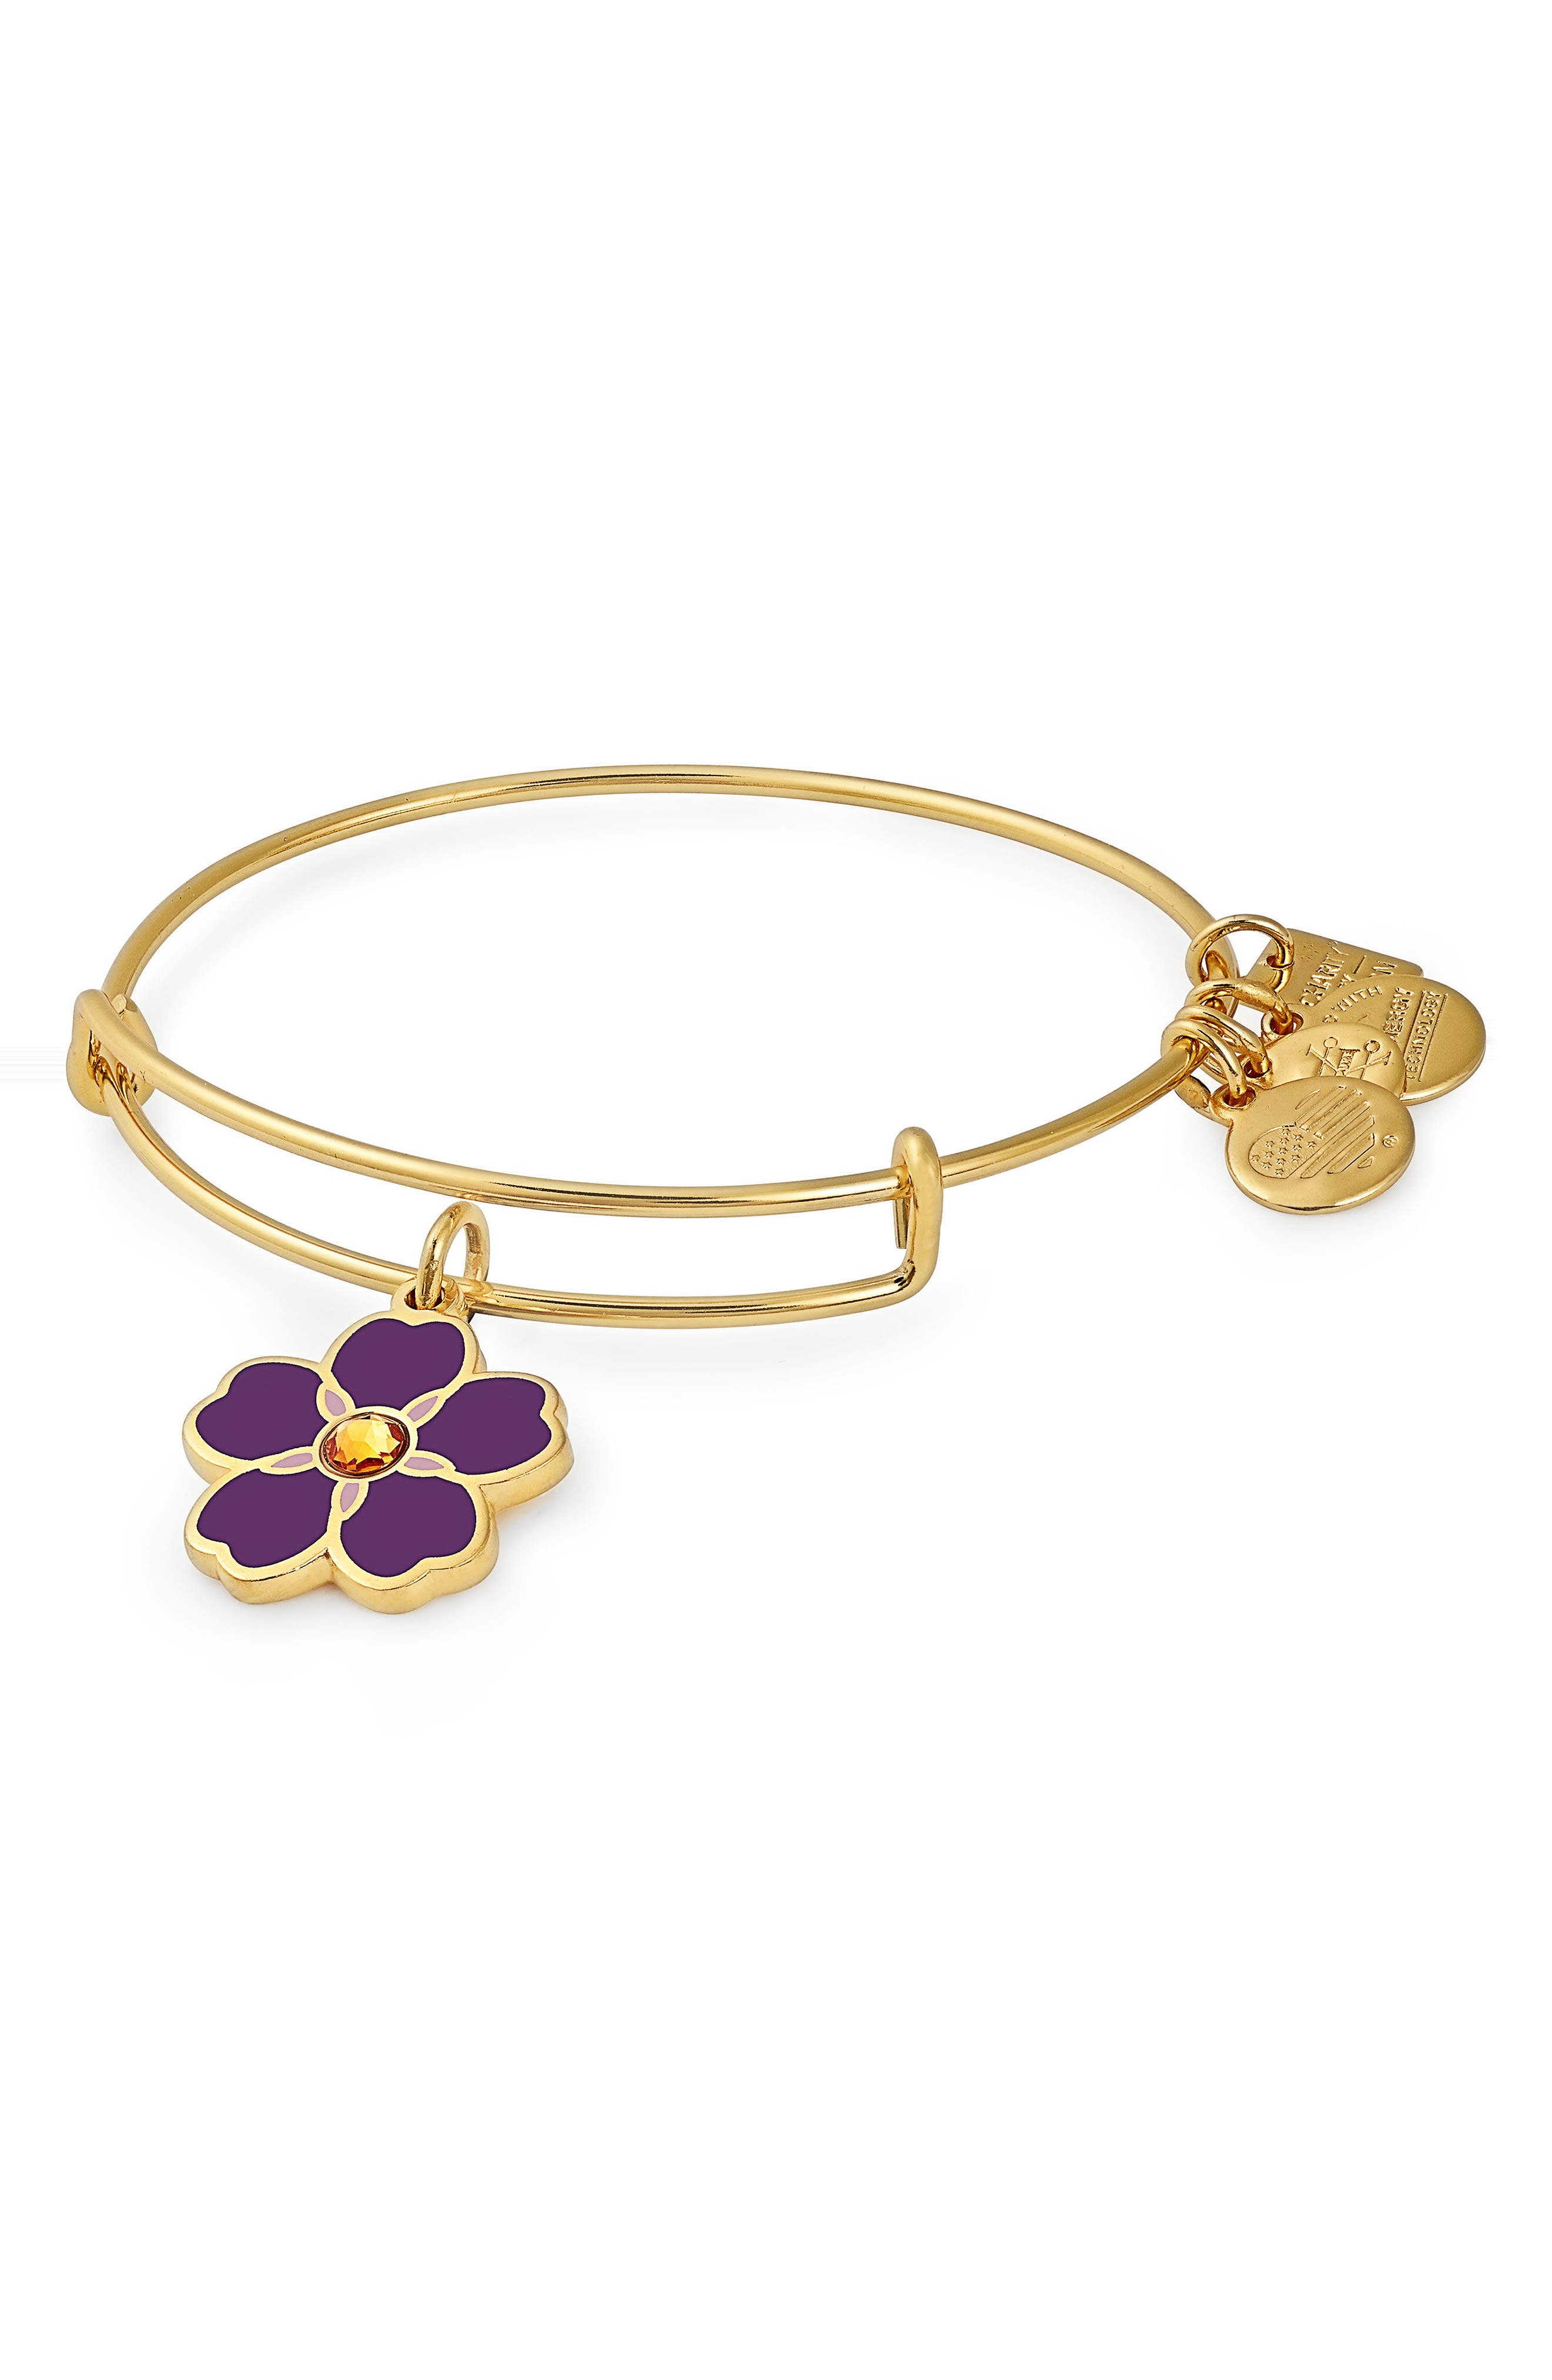 Charity by Design Forget Me Not Charm Bracelet,                             Main thumbnail 1, color,                             GOLD